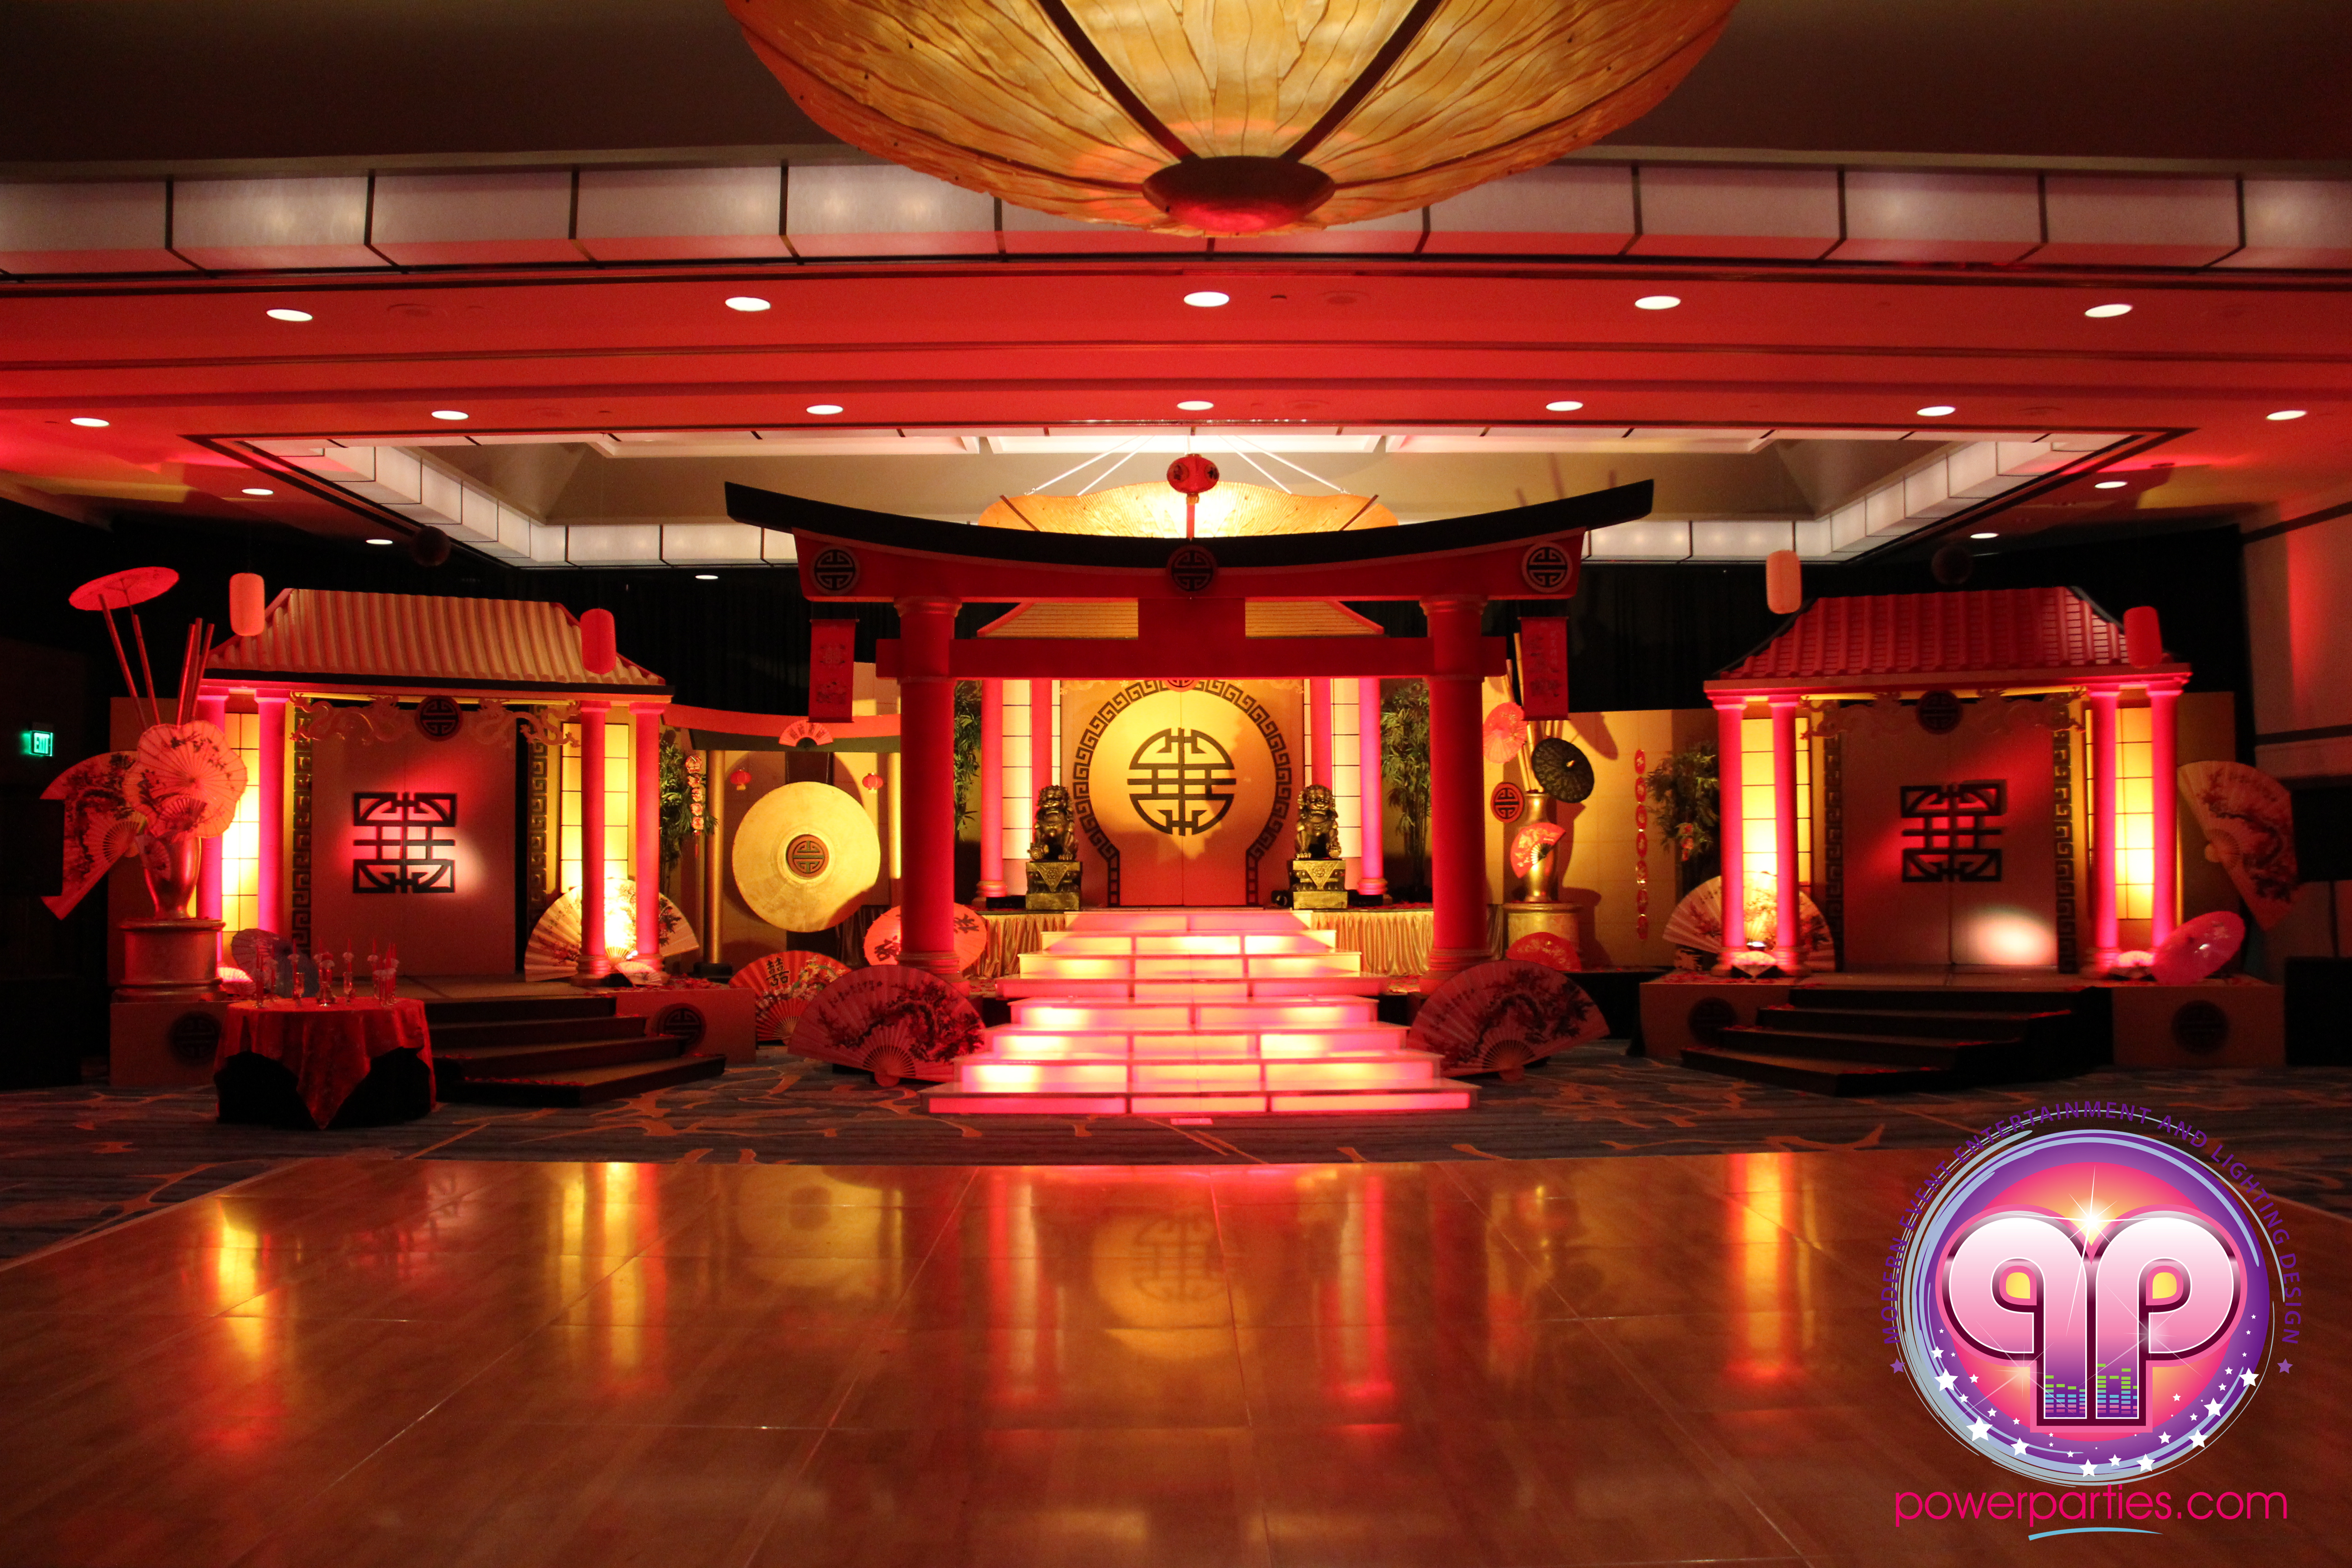 Chinese themed quince stage and decor for natalies quince in miami power parties blog junglespirit Image collections